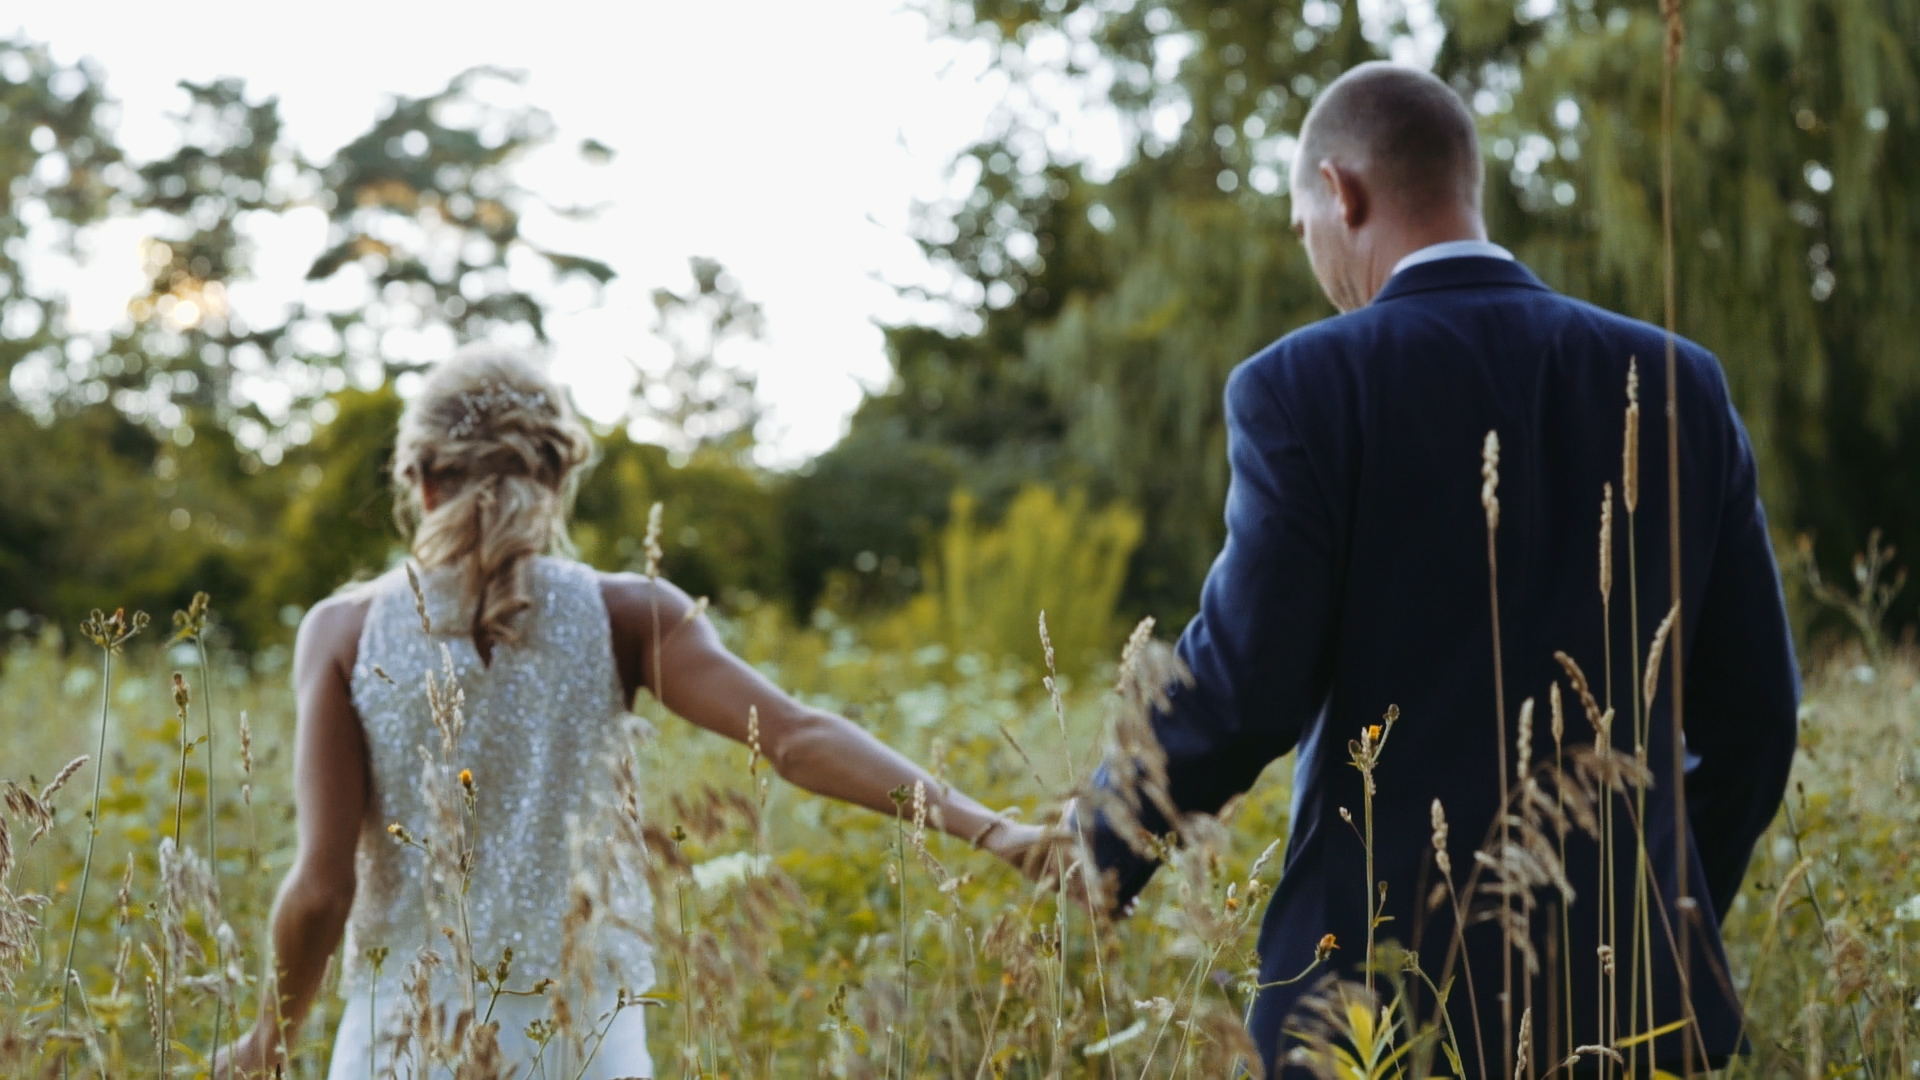 Penn Yan New York Wedding Video by Gaadt Productions